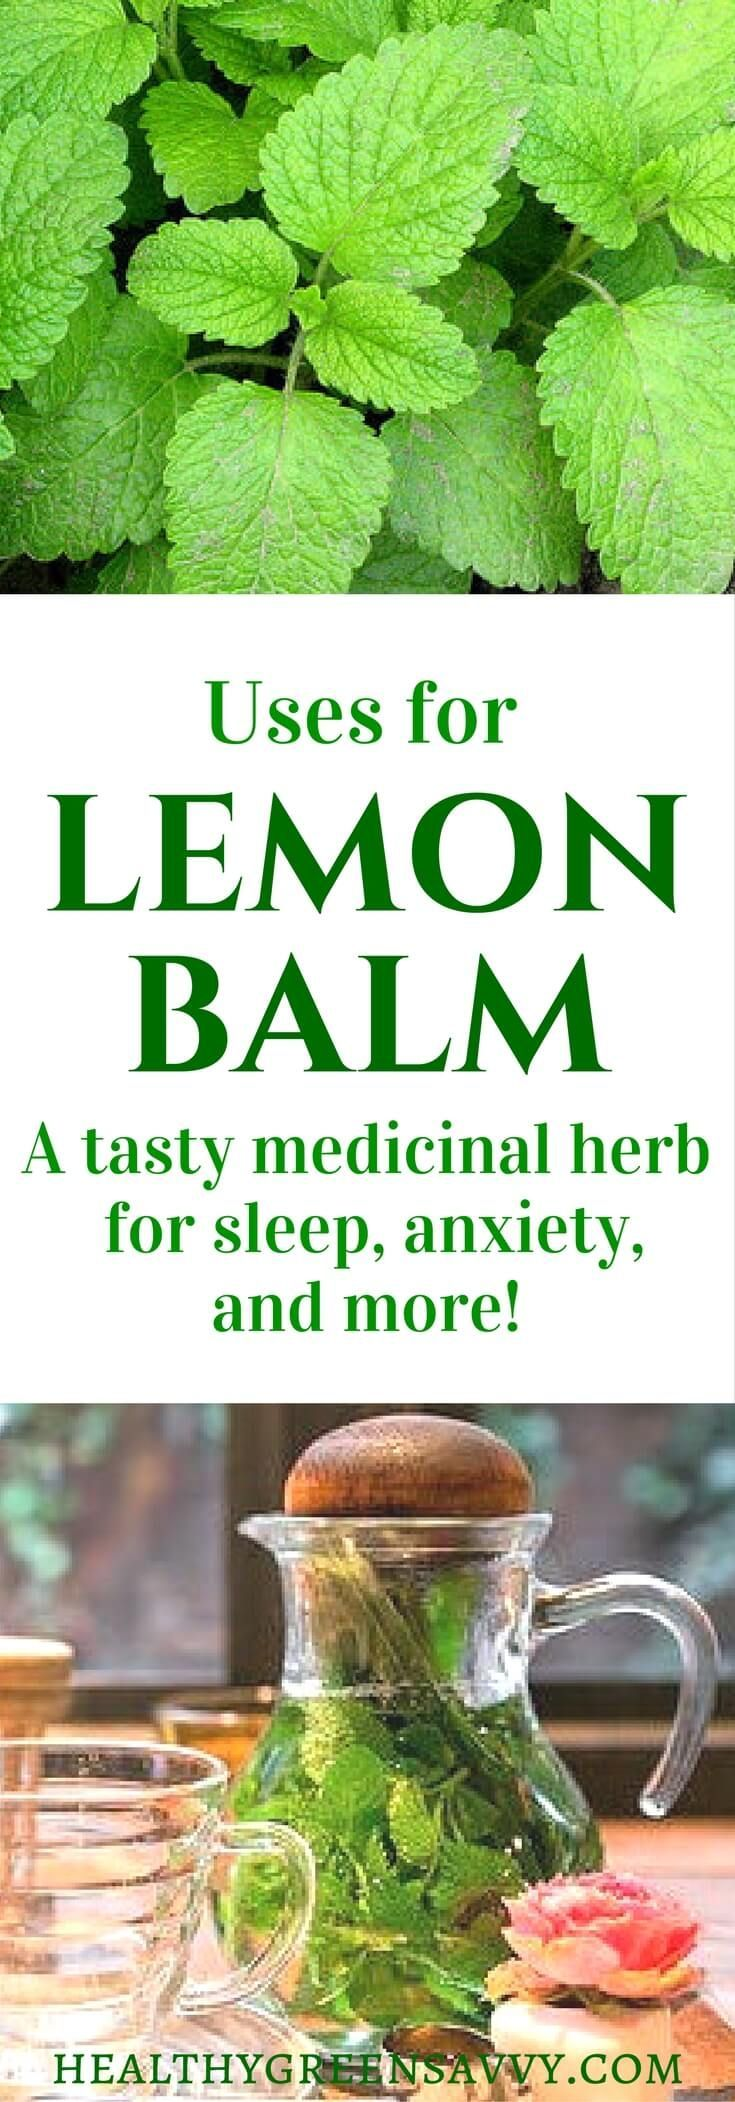 Lemon balm is my favorite herb for better sleep! This amazing plant deserves a place in your garden and herbal remedy arsenal. Click to find out more or pin to save for later. | lemon balm uses | garden | medicinal plants | sleep tea | herbal remedies | natural remedies | http://medicinalplantsnews.blogspot.com.co/